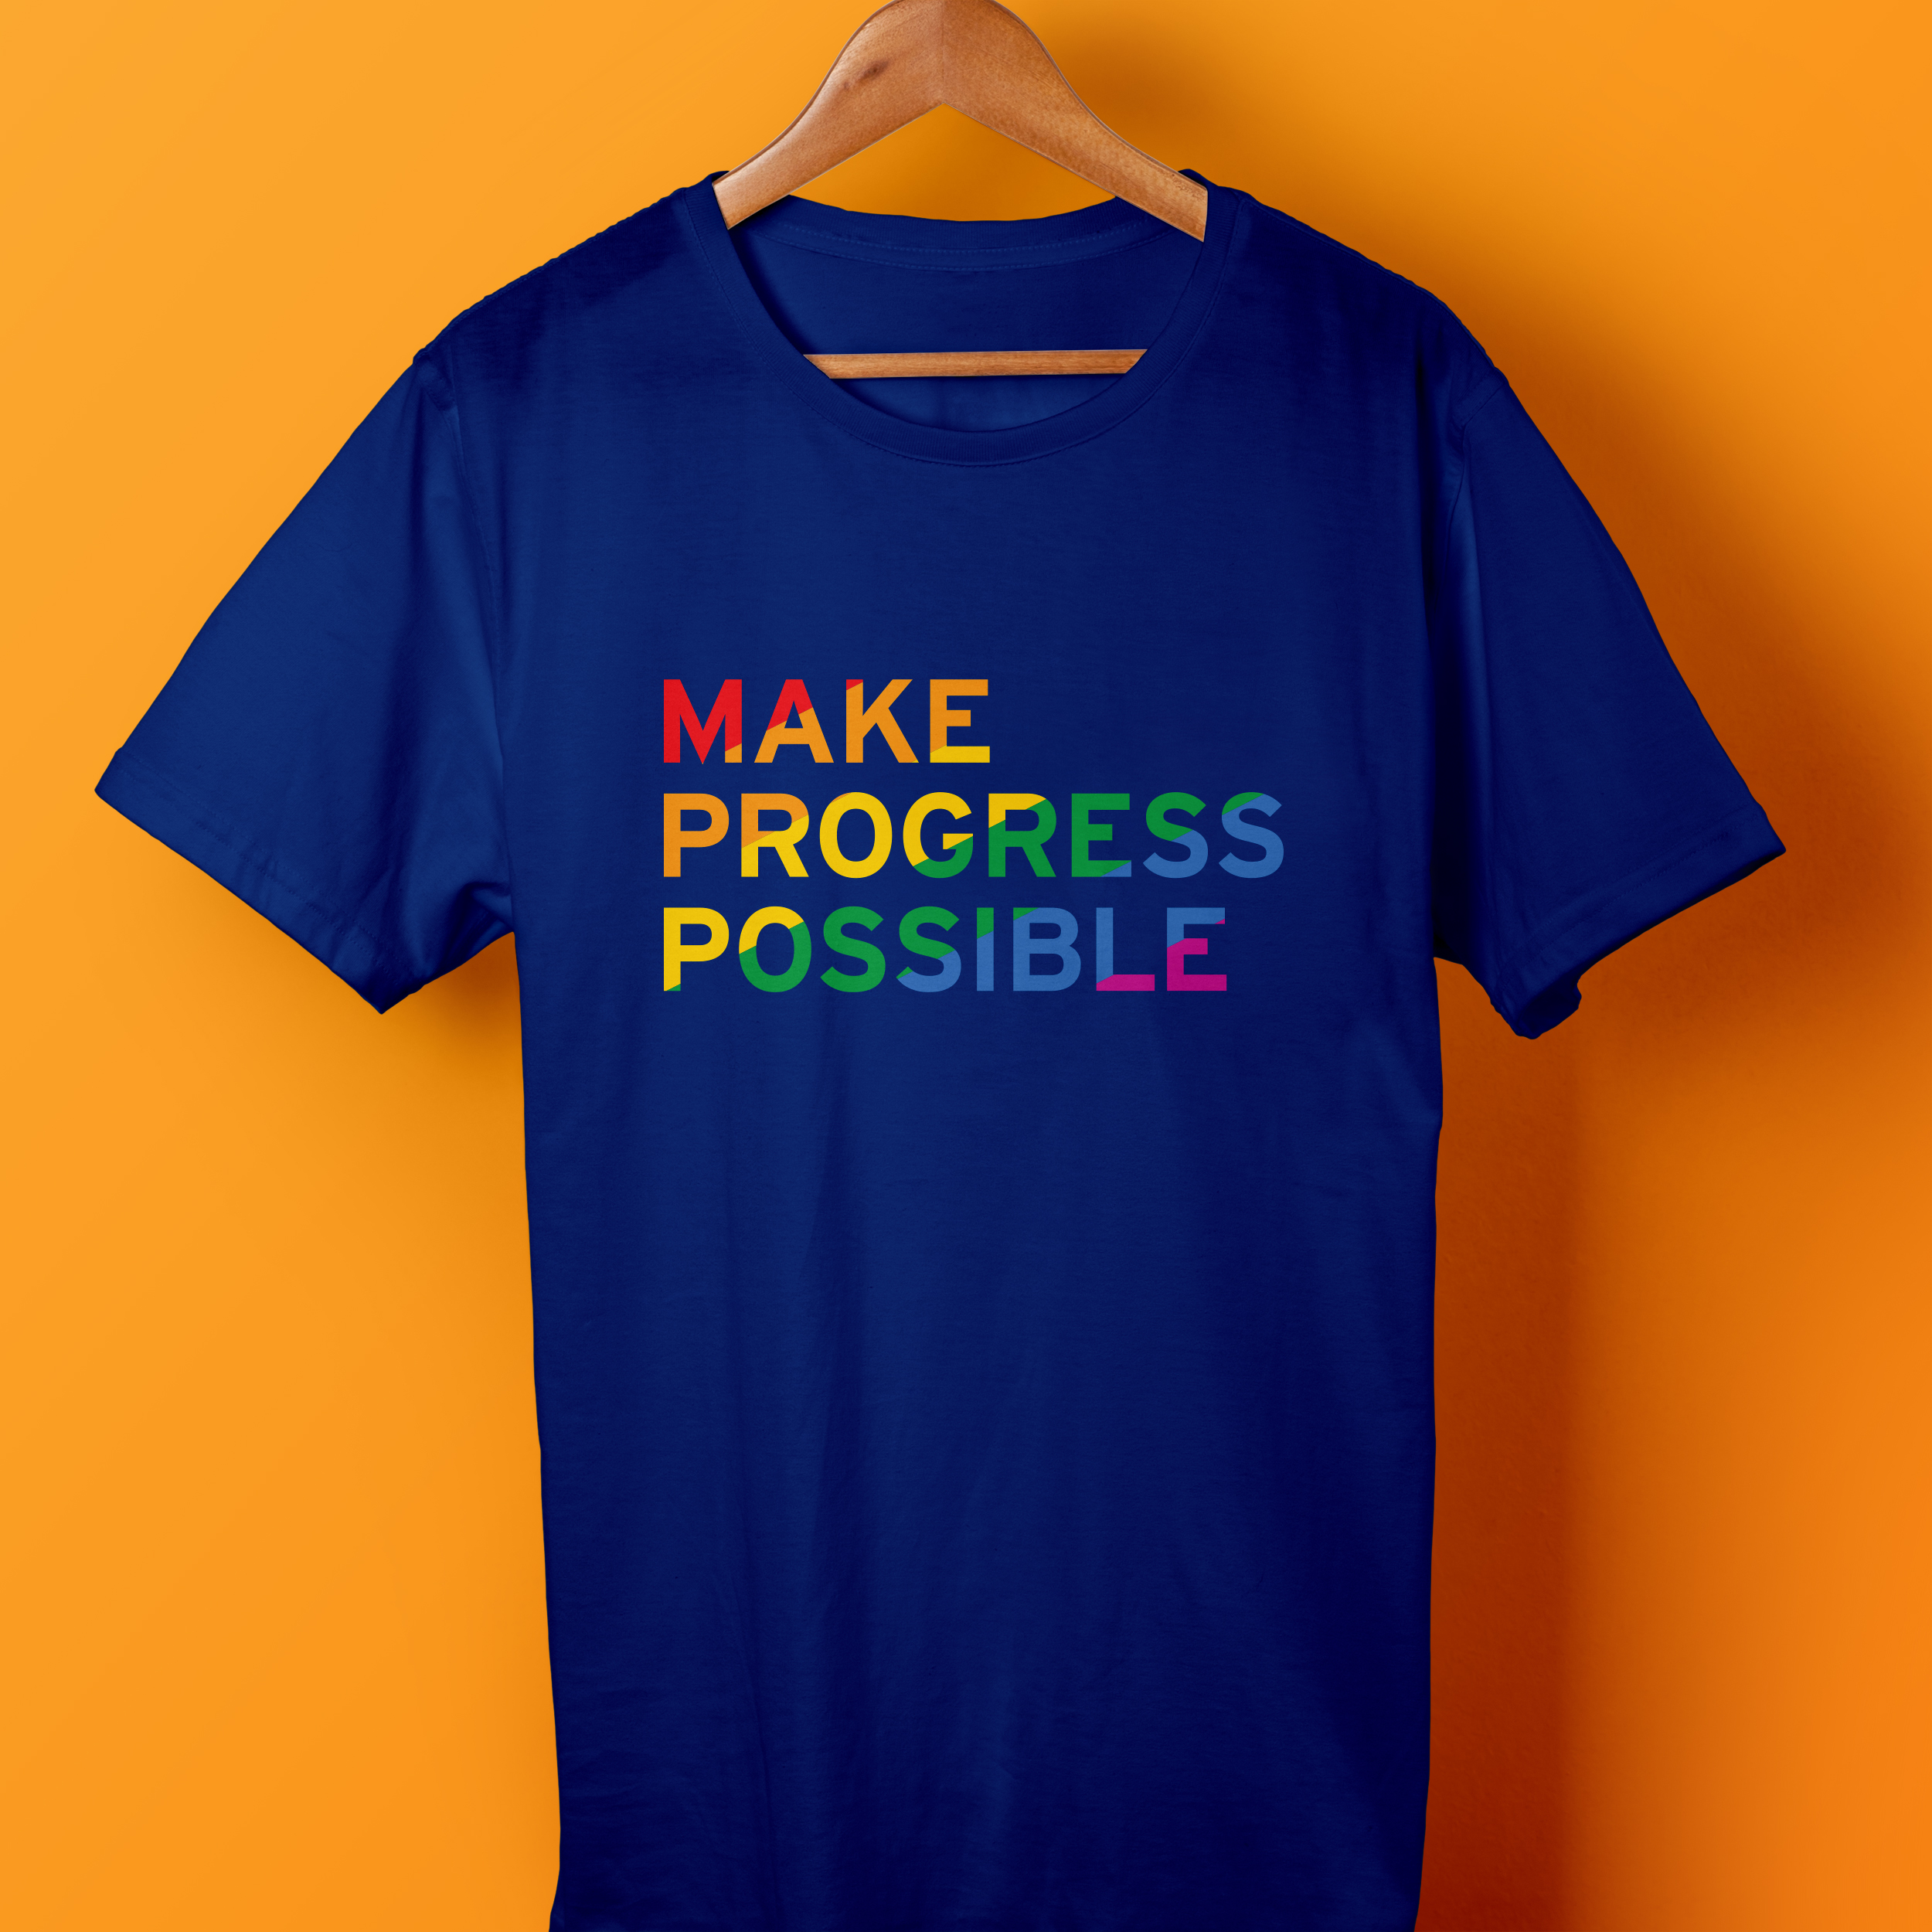 Parade T-Shirt - The rainbow color palette that highlights the faces of Citi's LGBTQ community members in other communicatiosn for this campaign is used to diagonally fill the